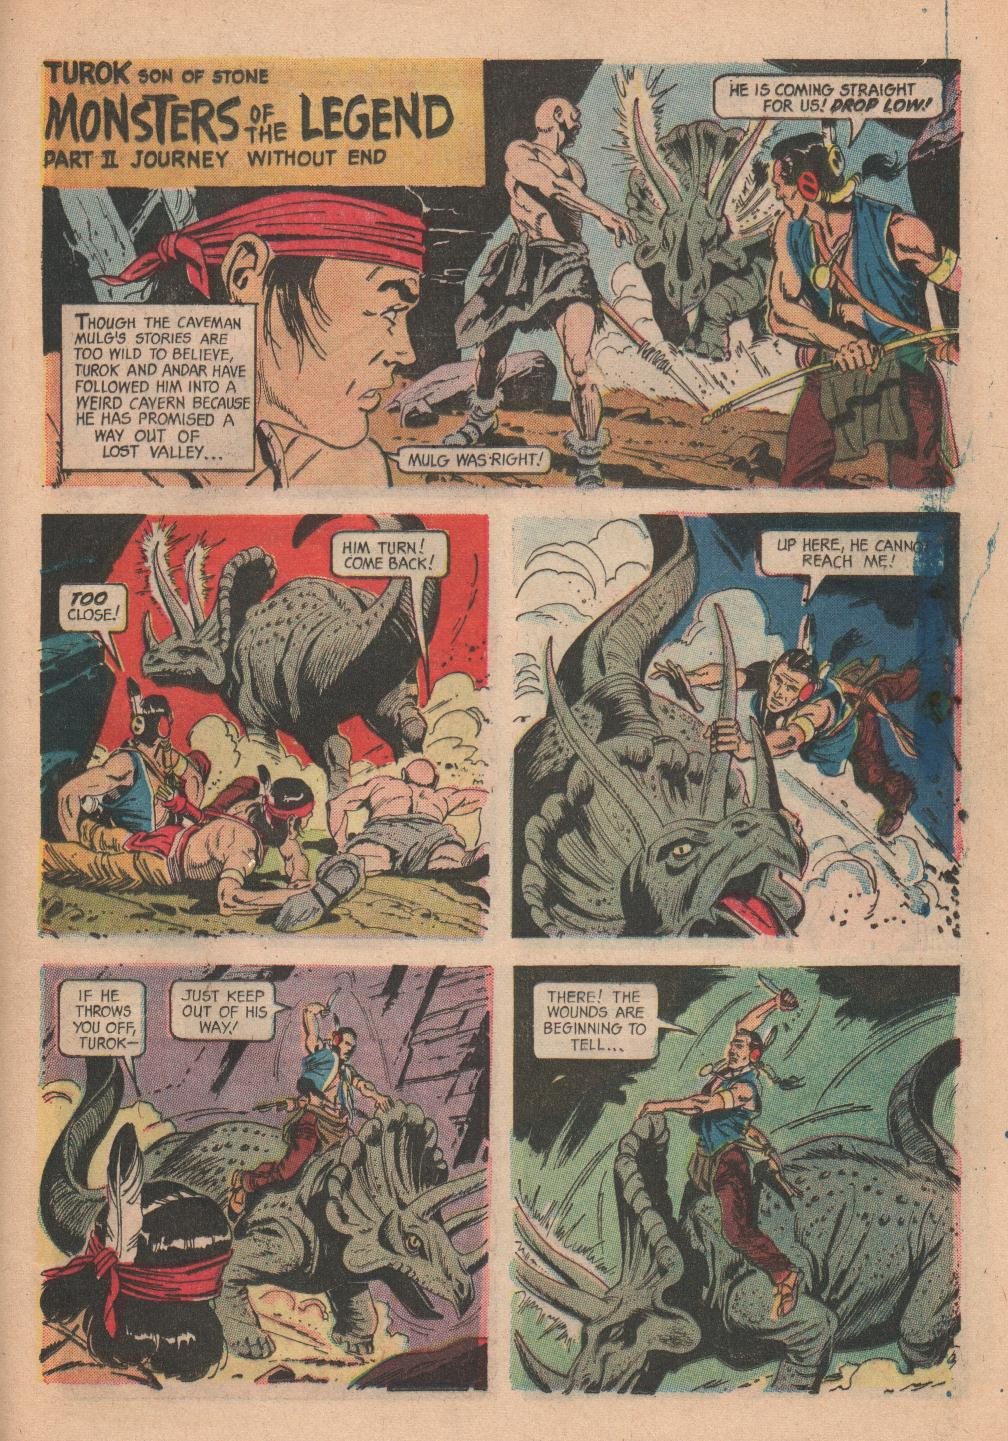 Read online Turok, Son of Stone comic -  Issue #55 - 23